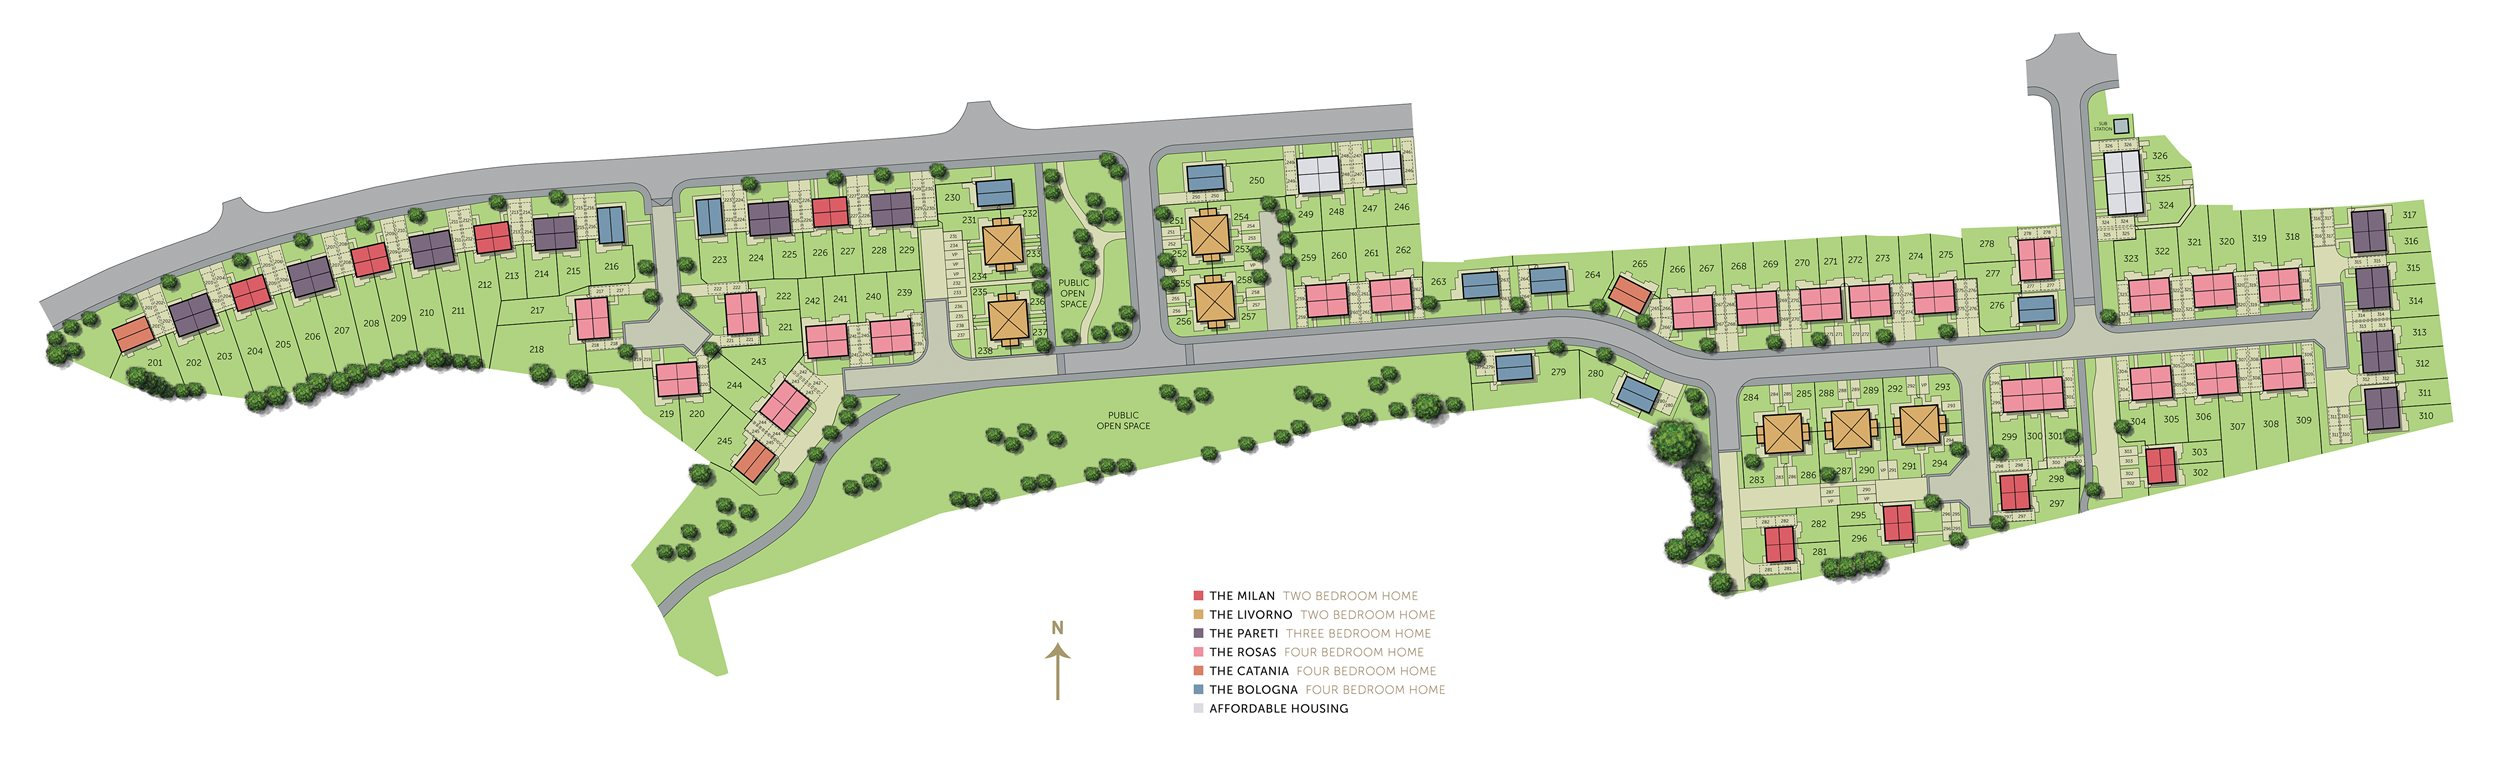 Ambition site plan